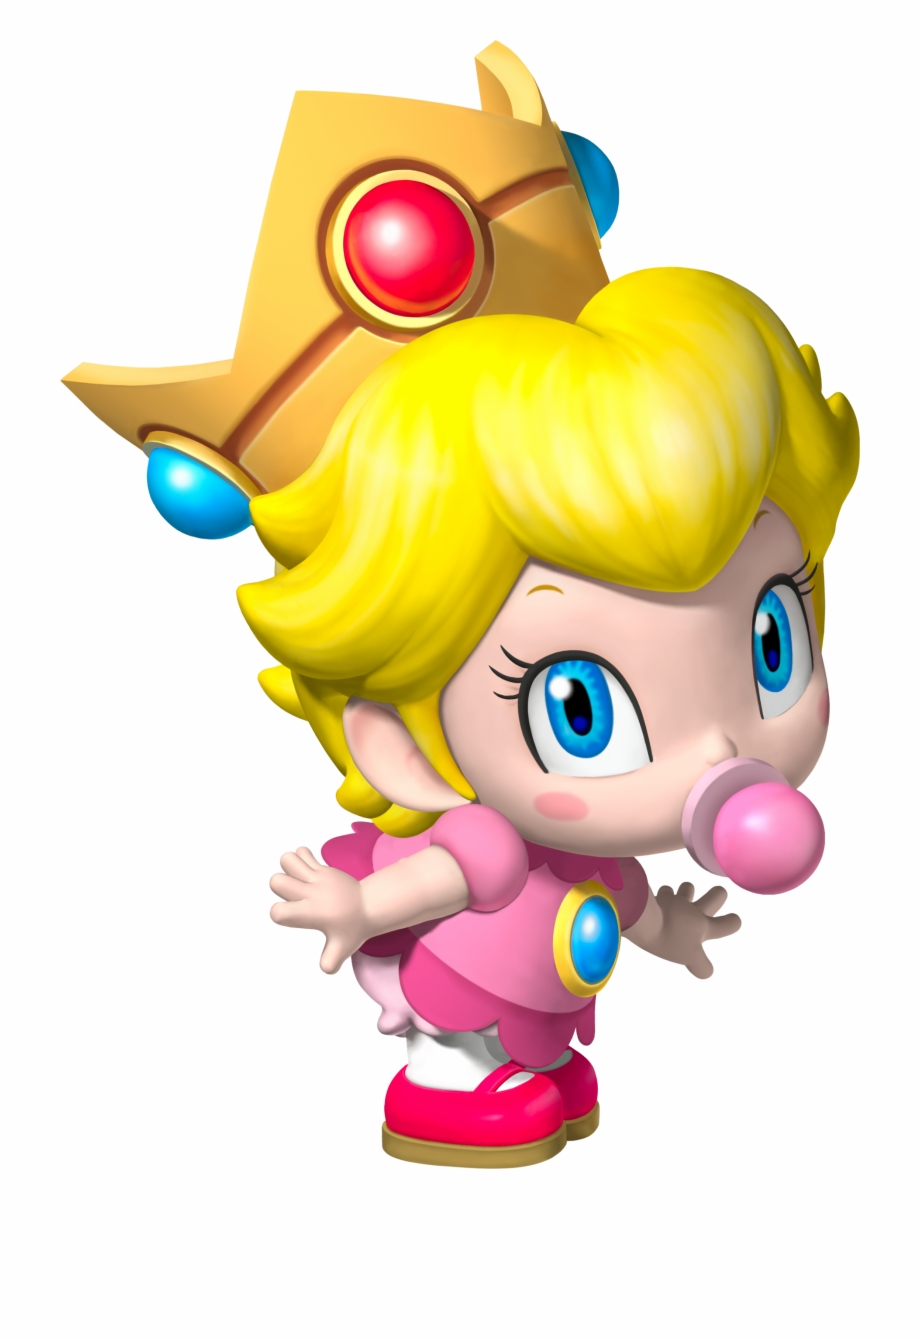 Mario Kart For Mario Kart Wii What Small Character Baby Peach